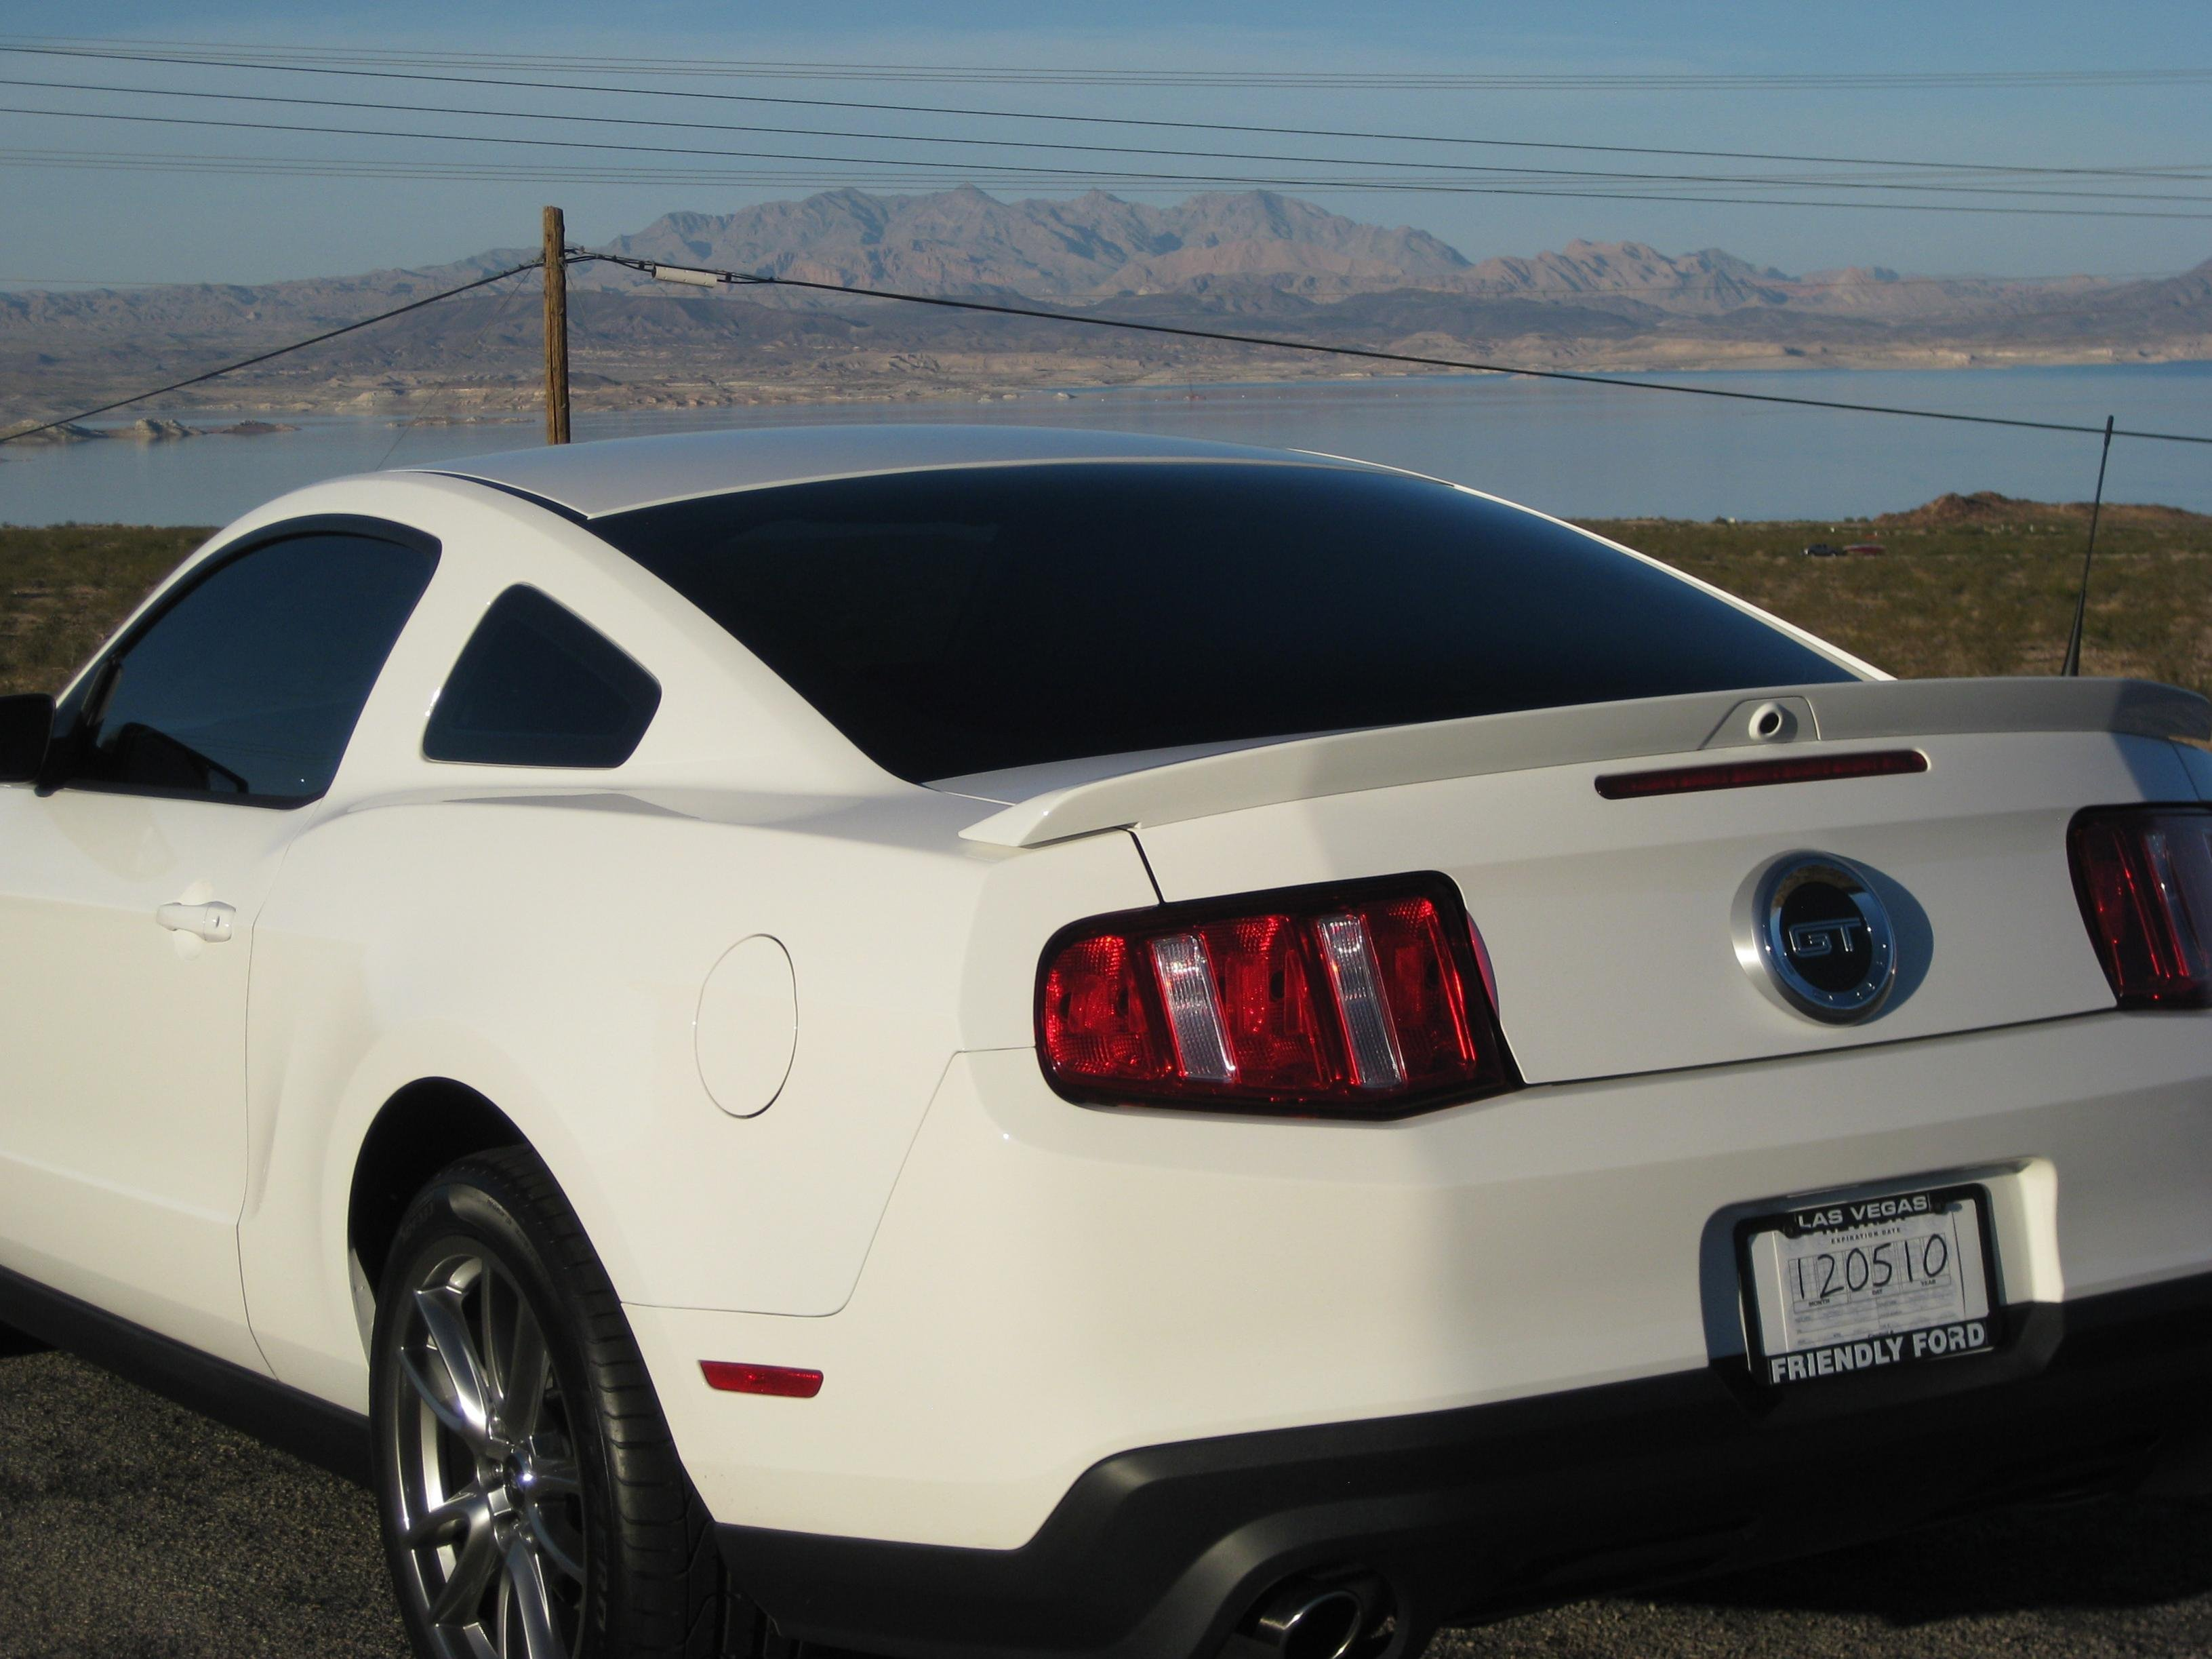 2011 mustang back up camera and sensors ford mustang forum. Black Bedroom Furniture Sets. Home Design Ideas